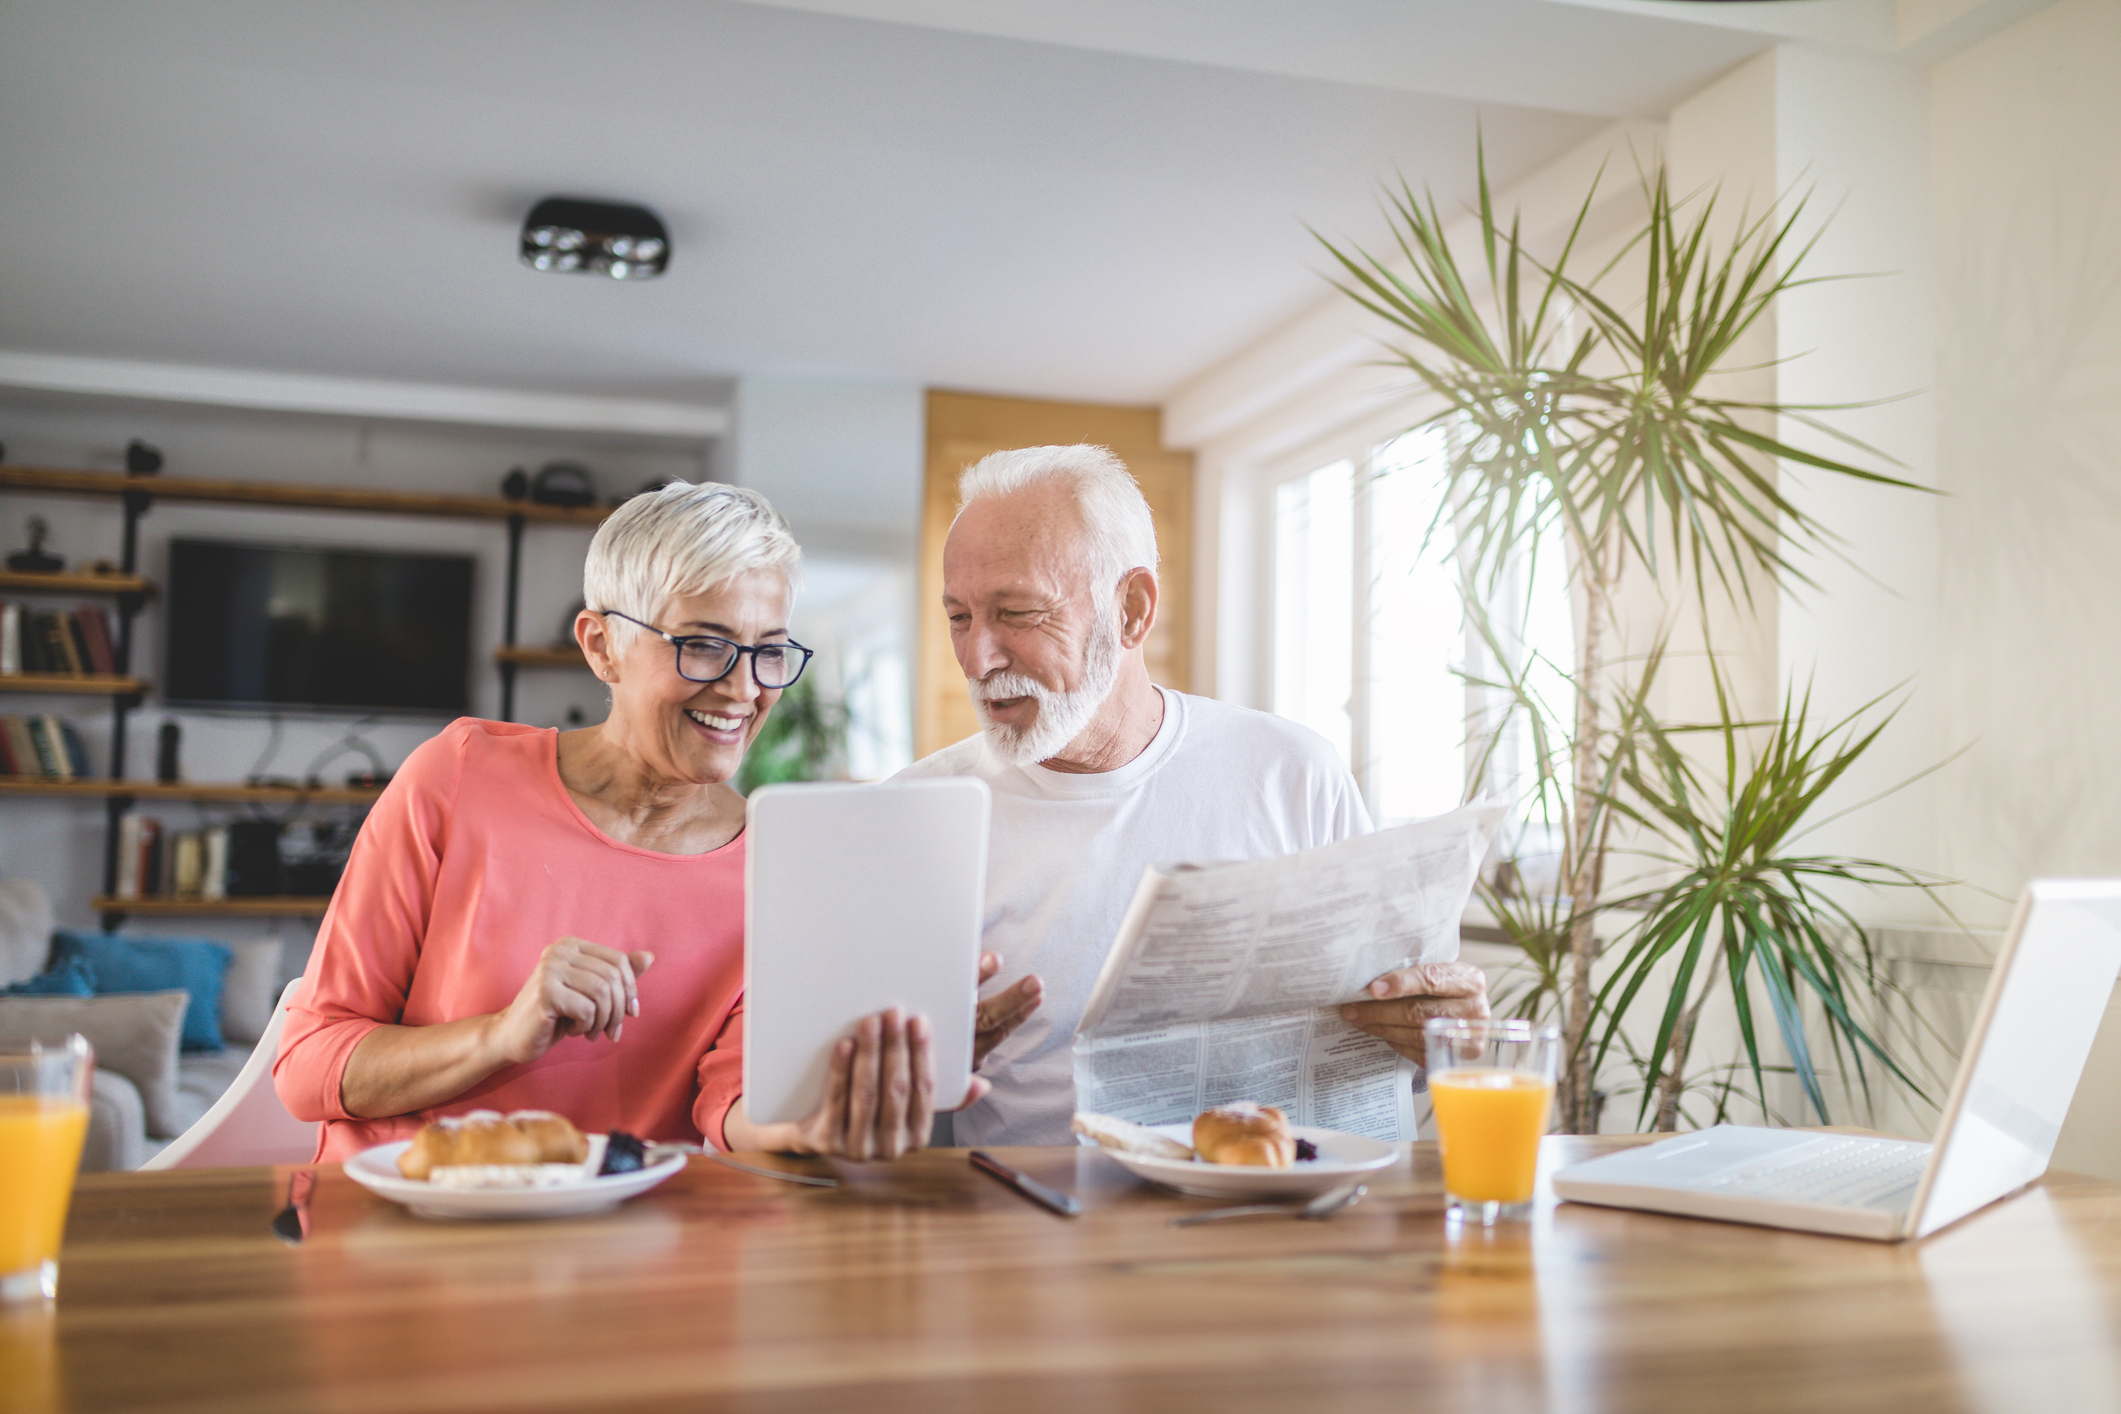 Can Technology Make Aging More Comfortable?